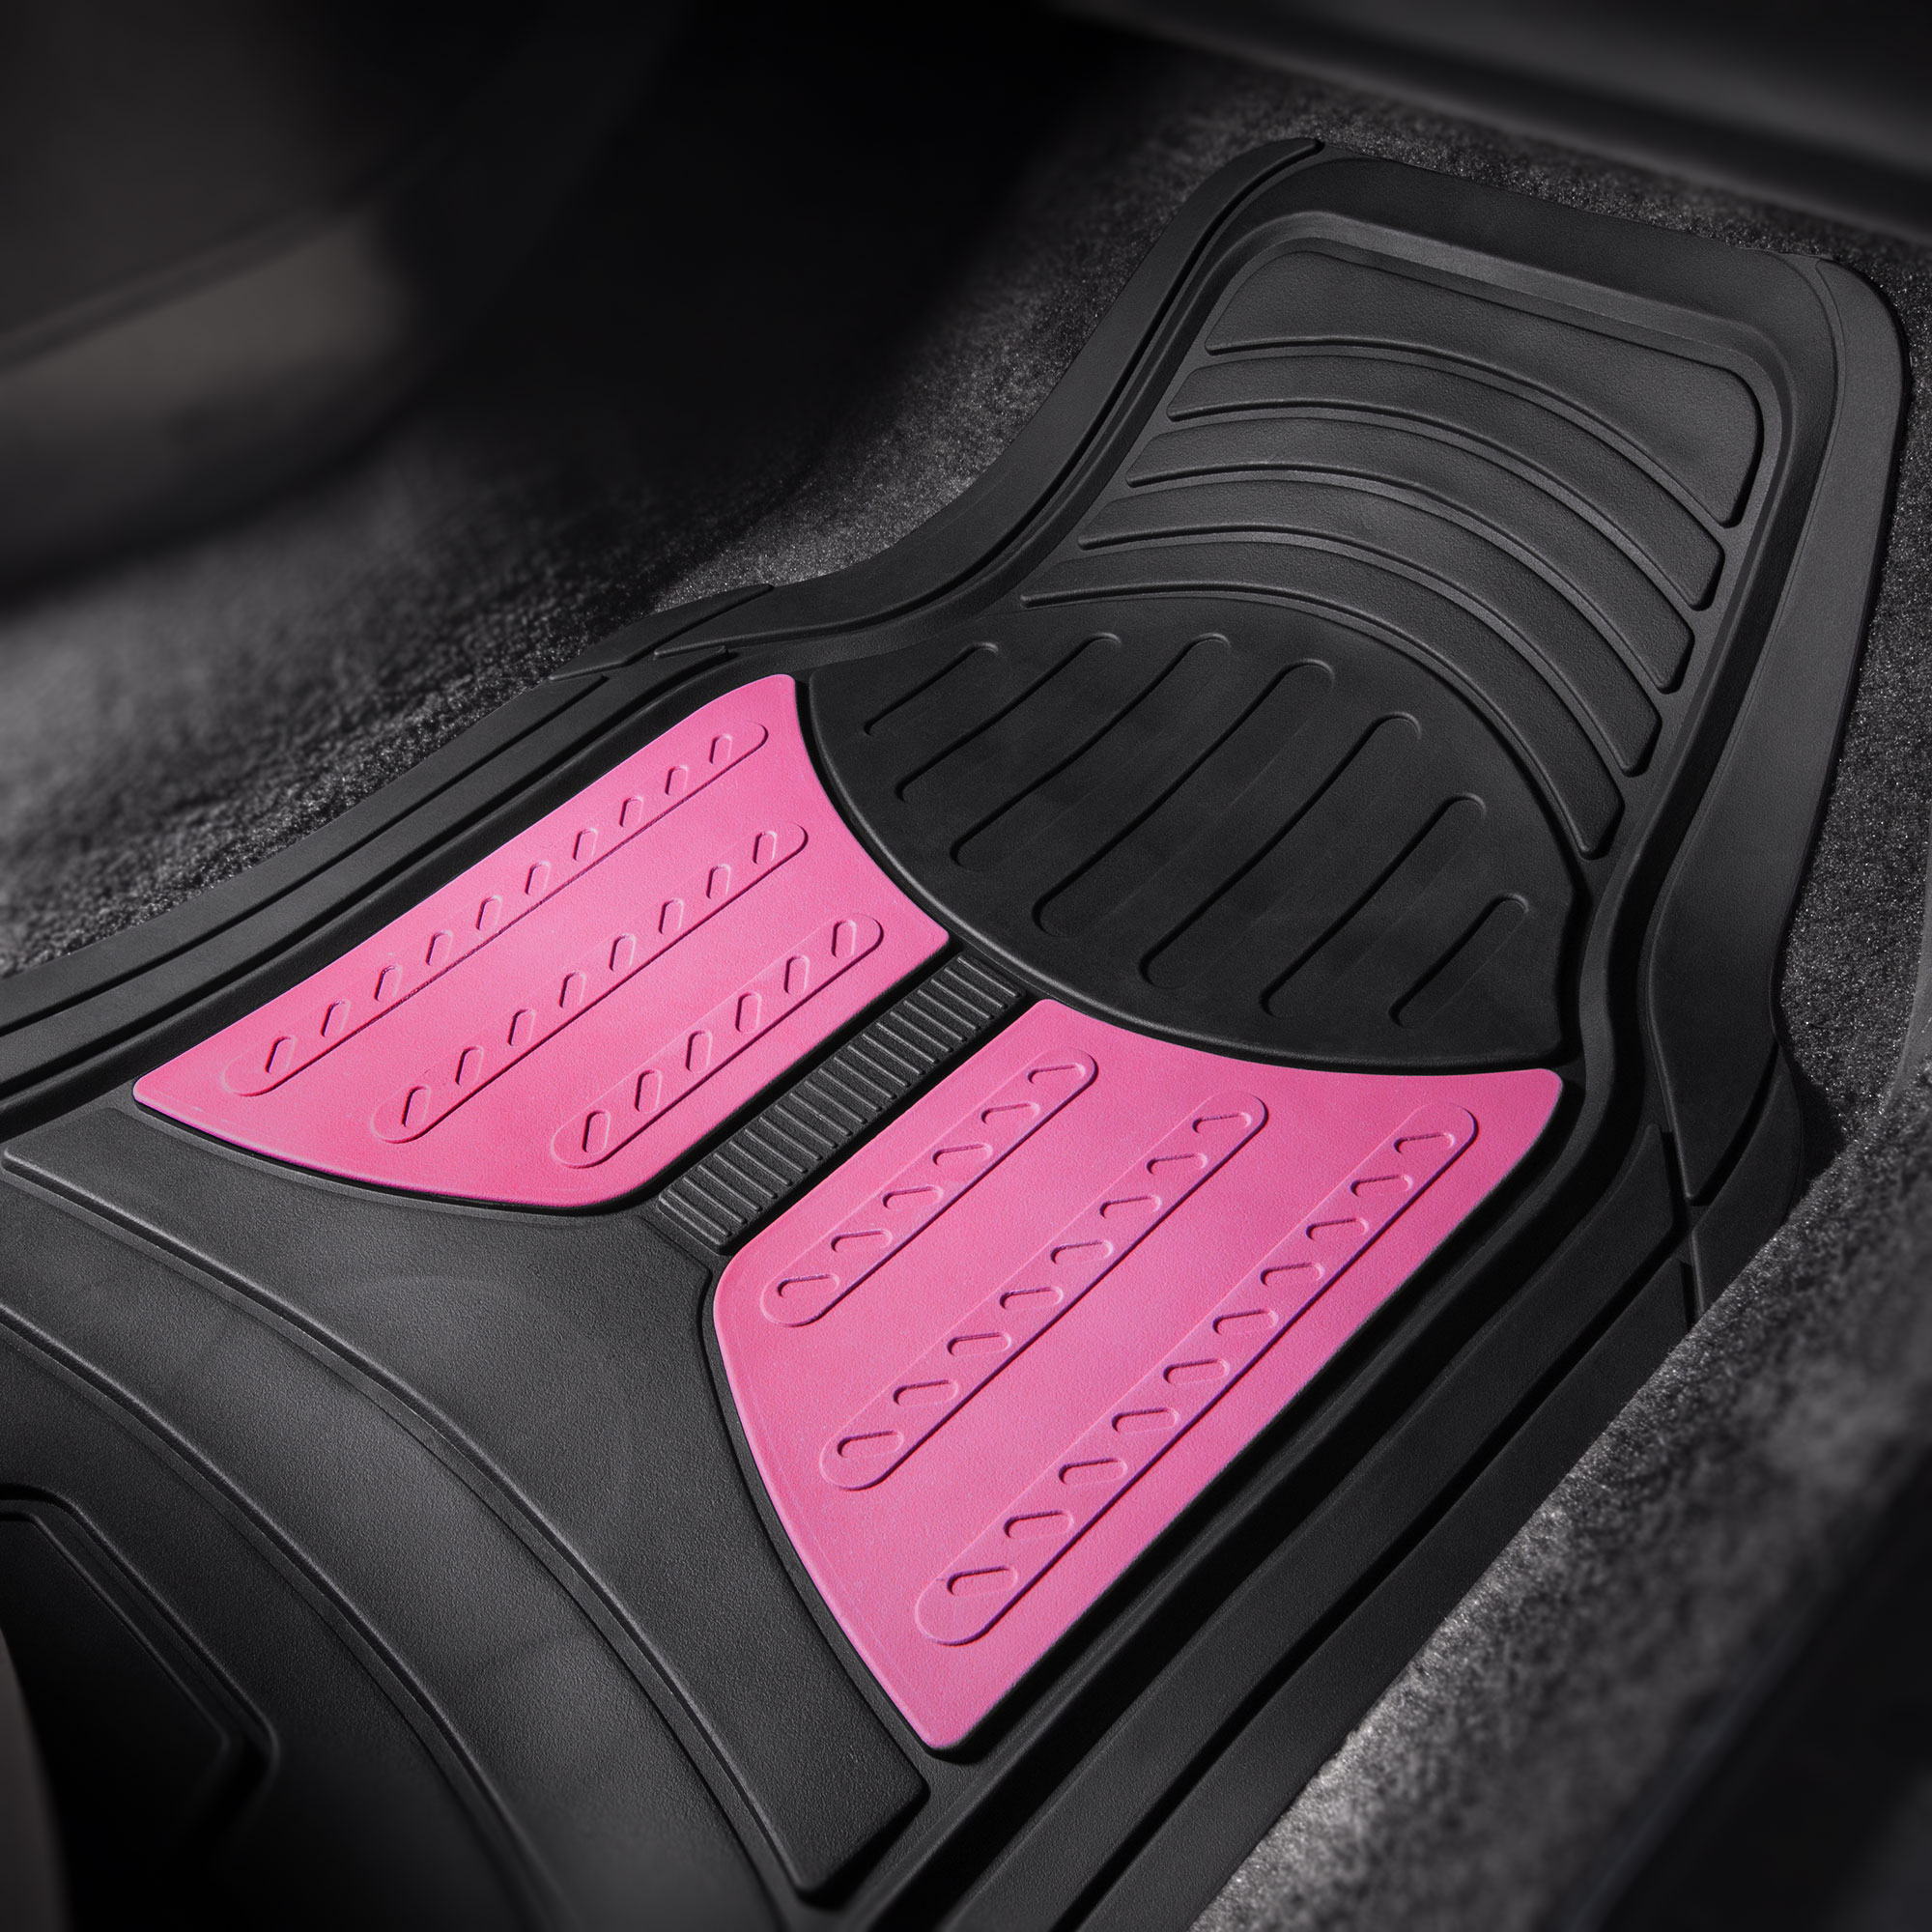 Car-Floor-Mats-for-All-Weather-Rubber-2-Tone-Design-4pc-Set-Heavy-Duty thumbnail 27